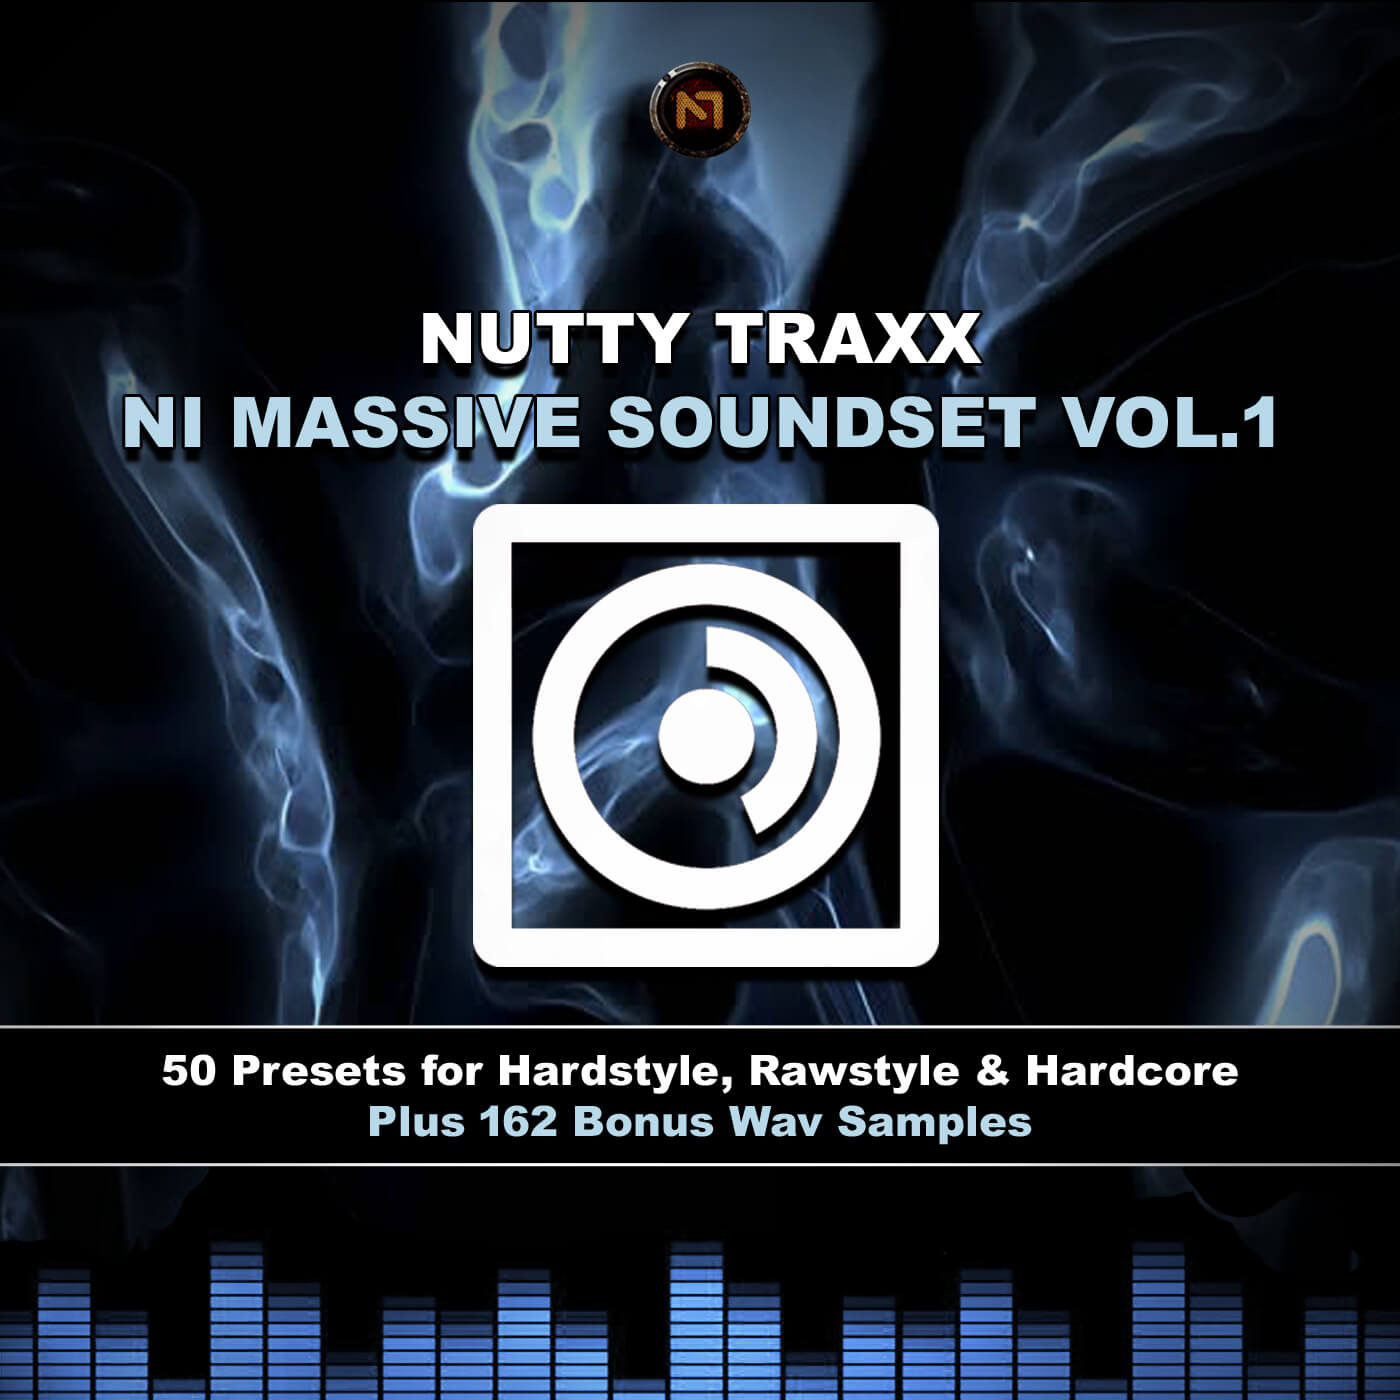 Nutty Traxx - NI Massive Soundset Vol 1